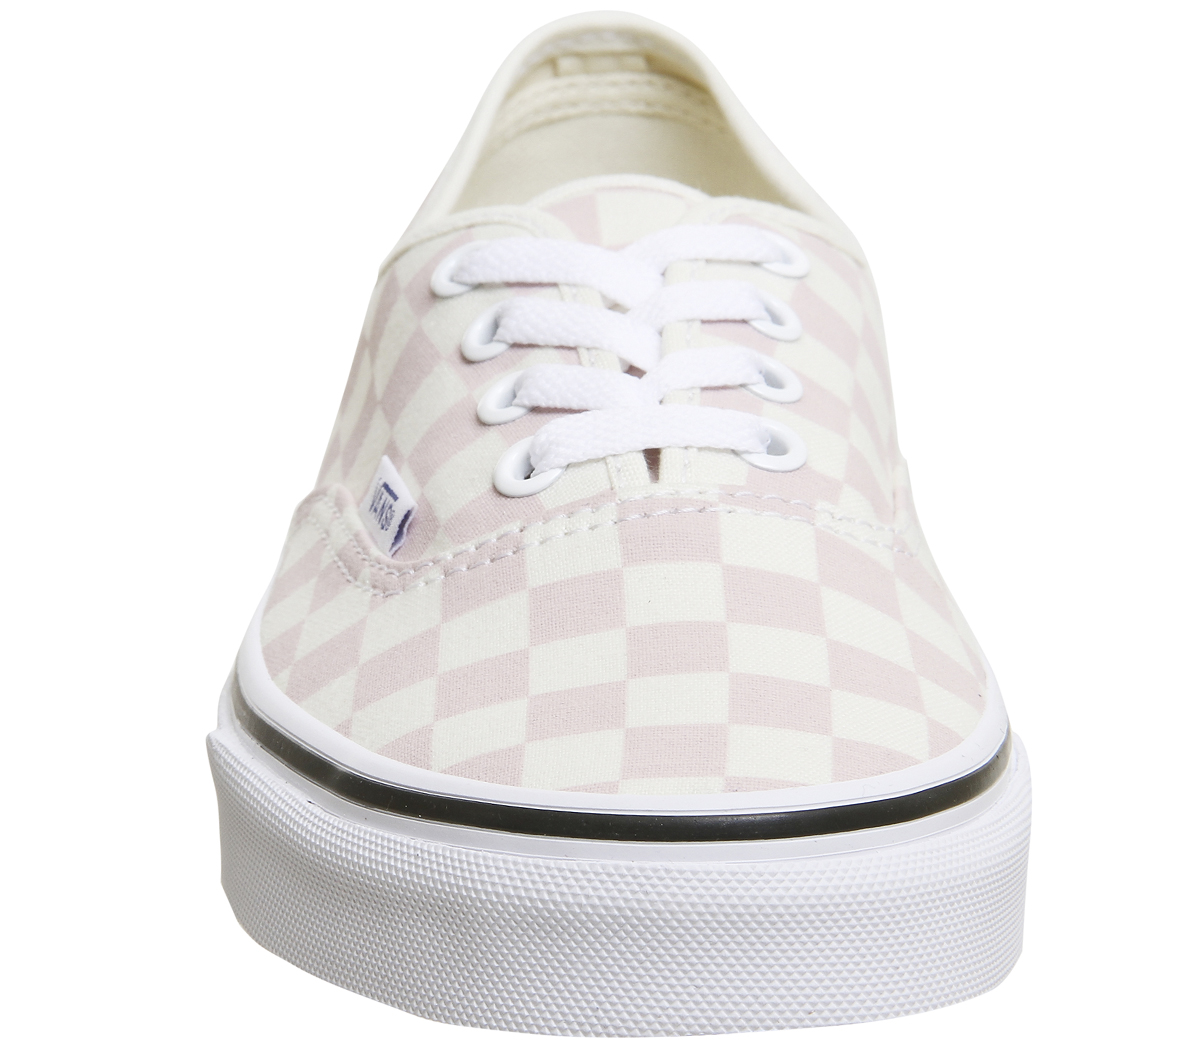 Sentinel Vans Authentic Trainers LIGHT PINK WHITE CHECKERBOARD Trainers  Shoes 738ad34d6